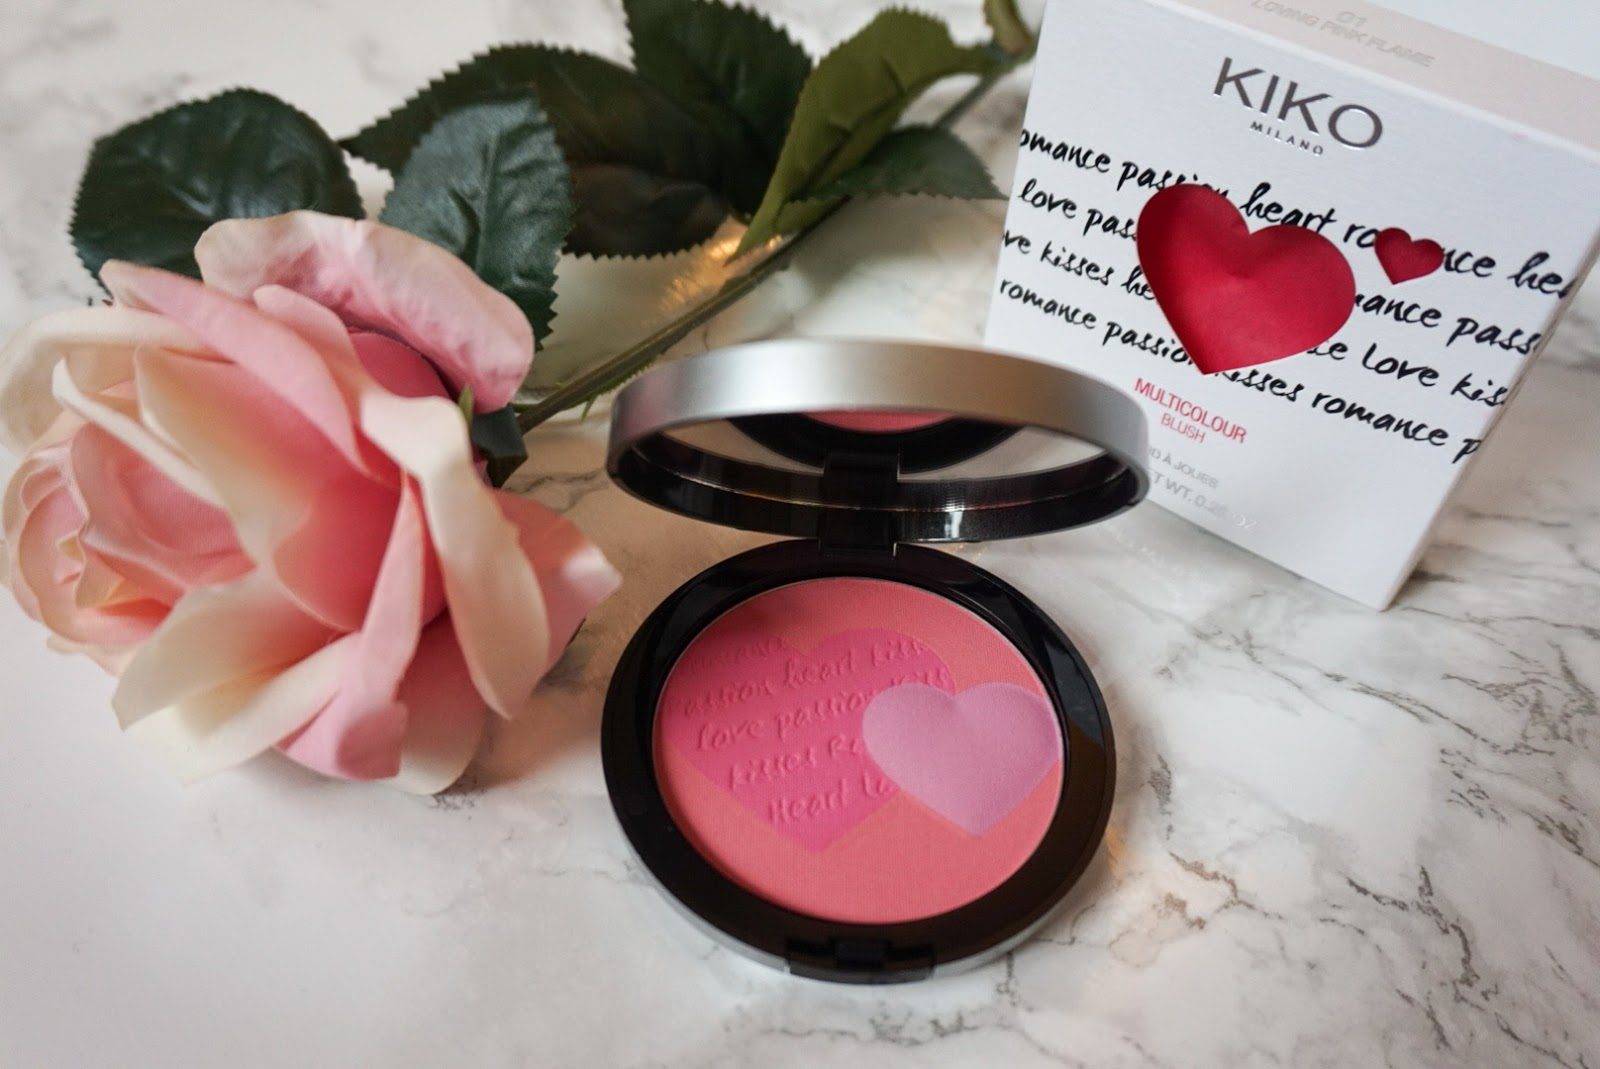 Kiko Milano multi colour blush in loving pink flame